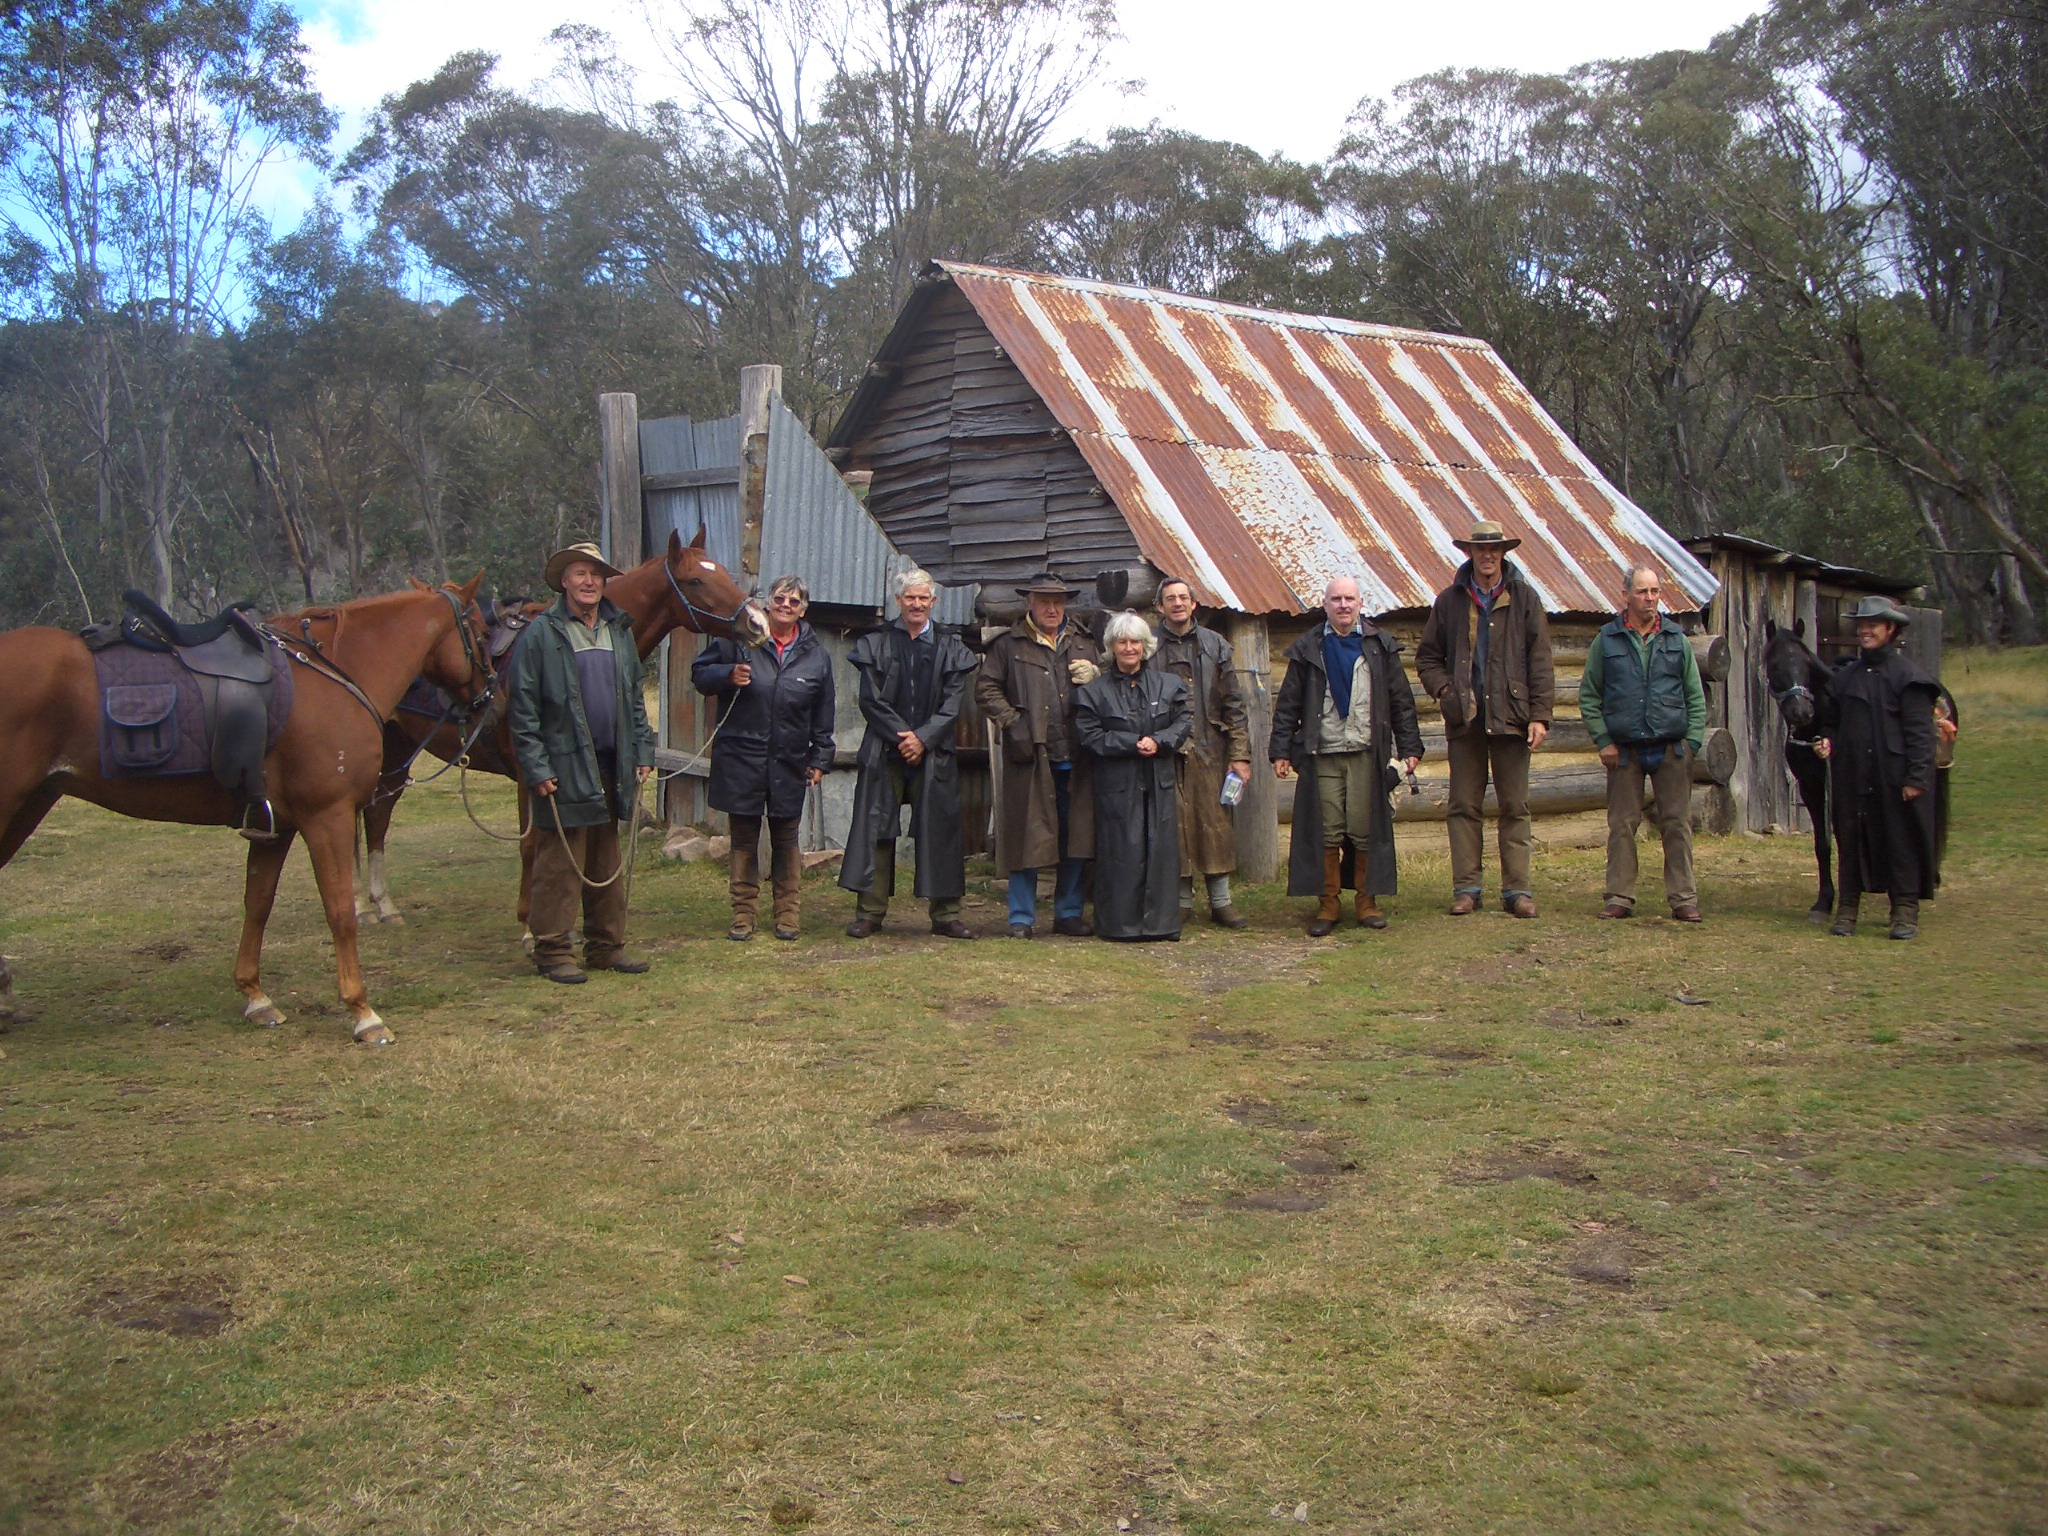 Riders arrived at Davies Plain Hut